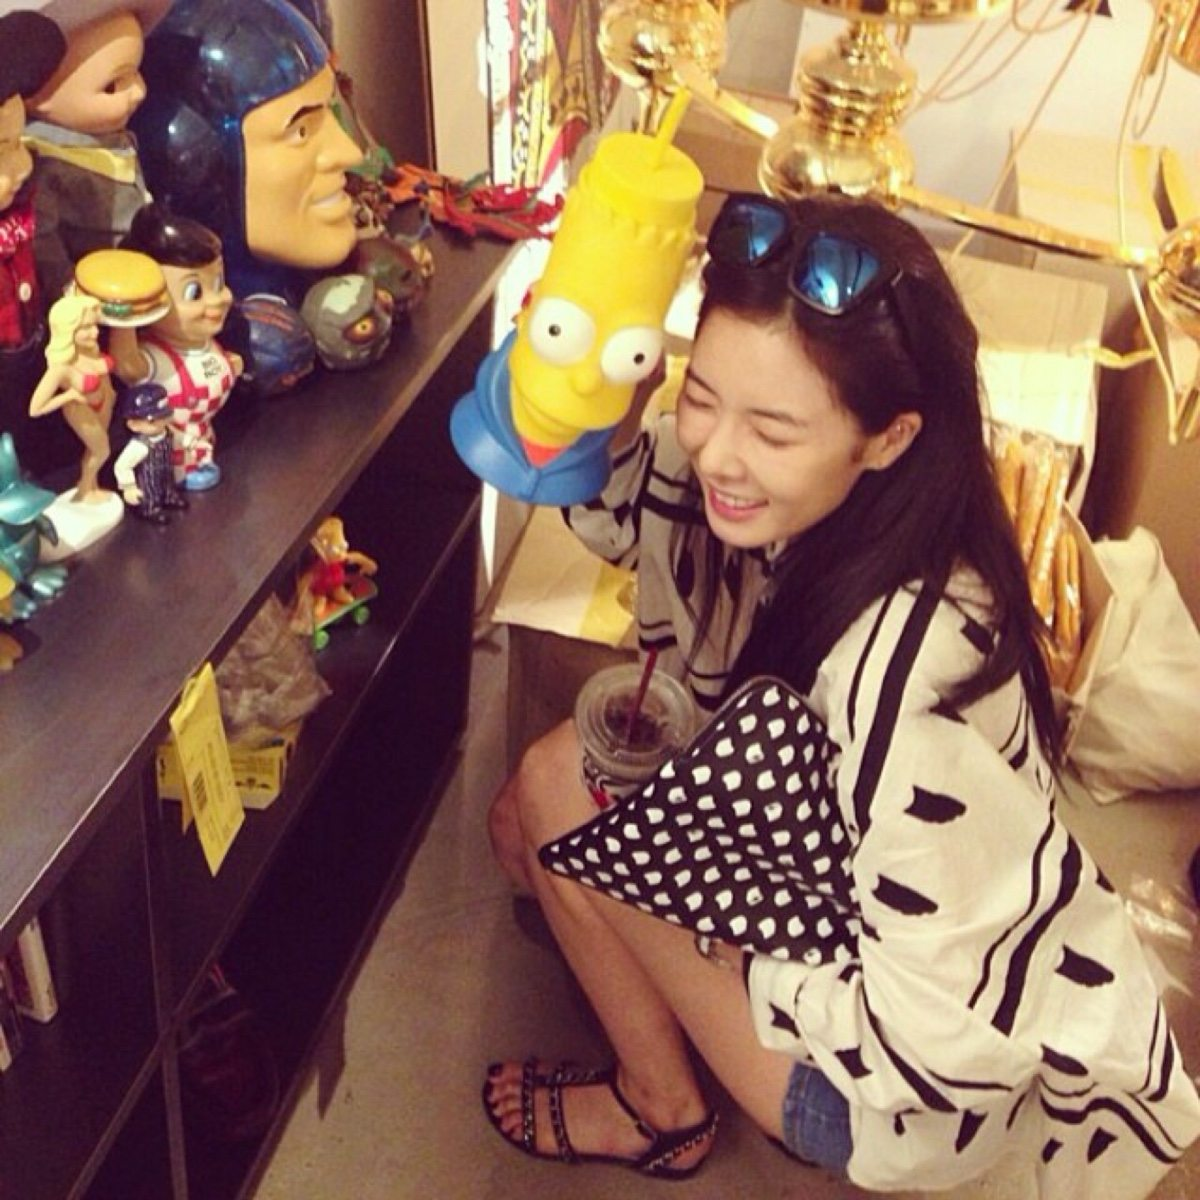 6 Idols With Collections That Would Make Anyone Envious